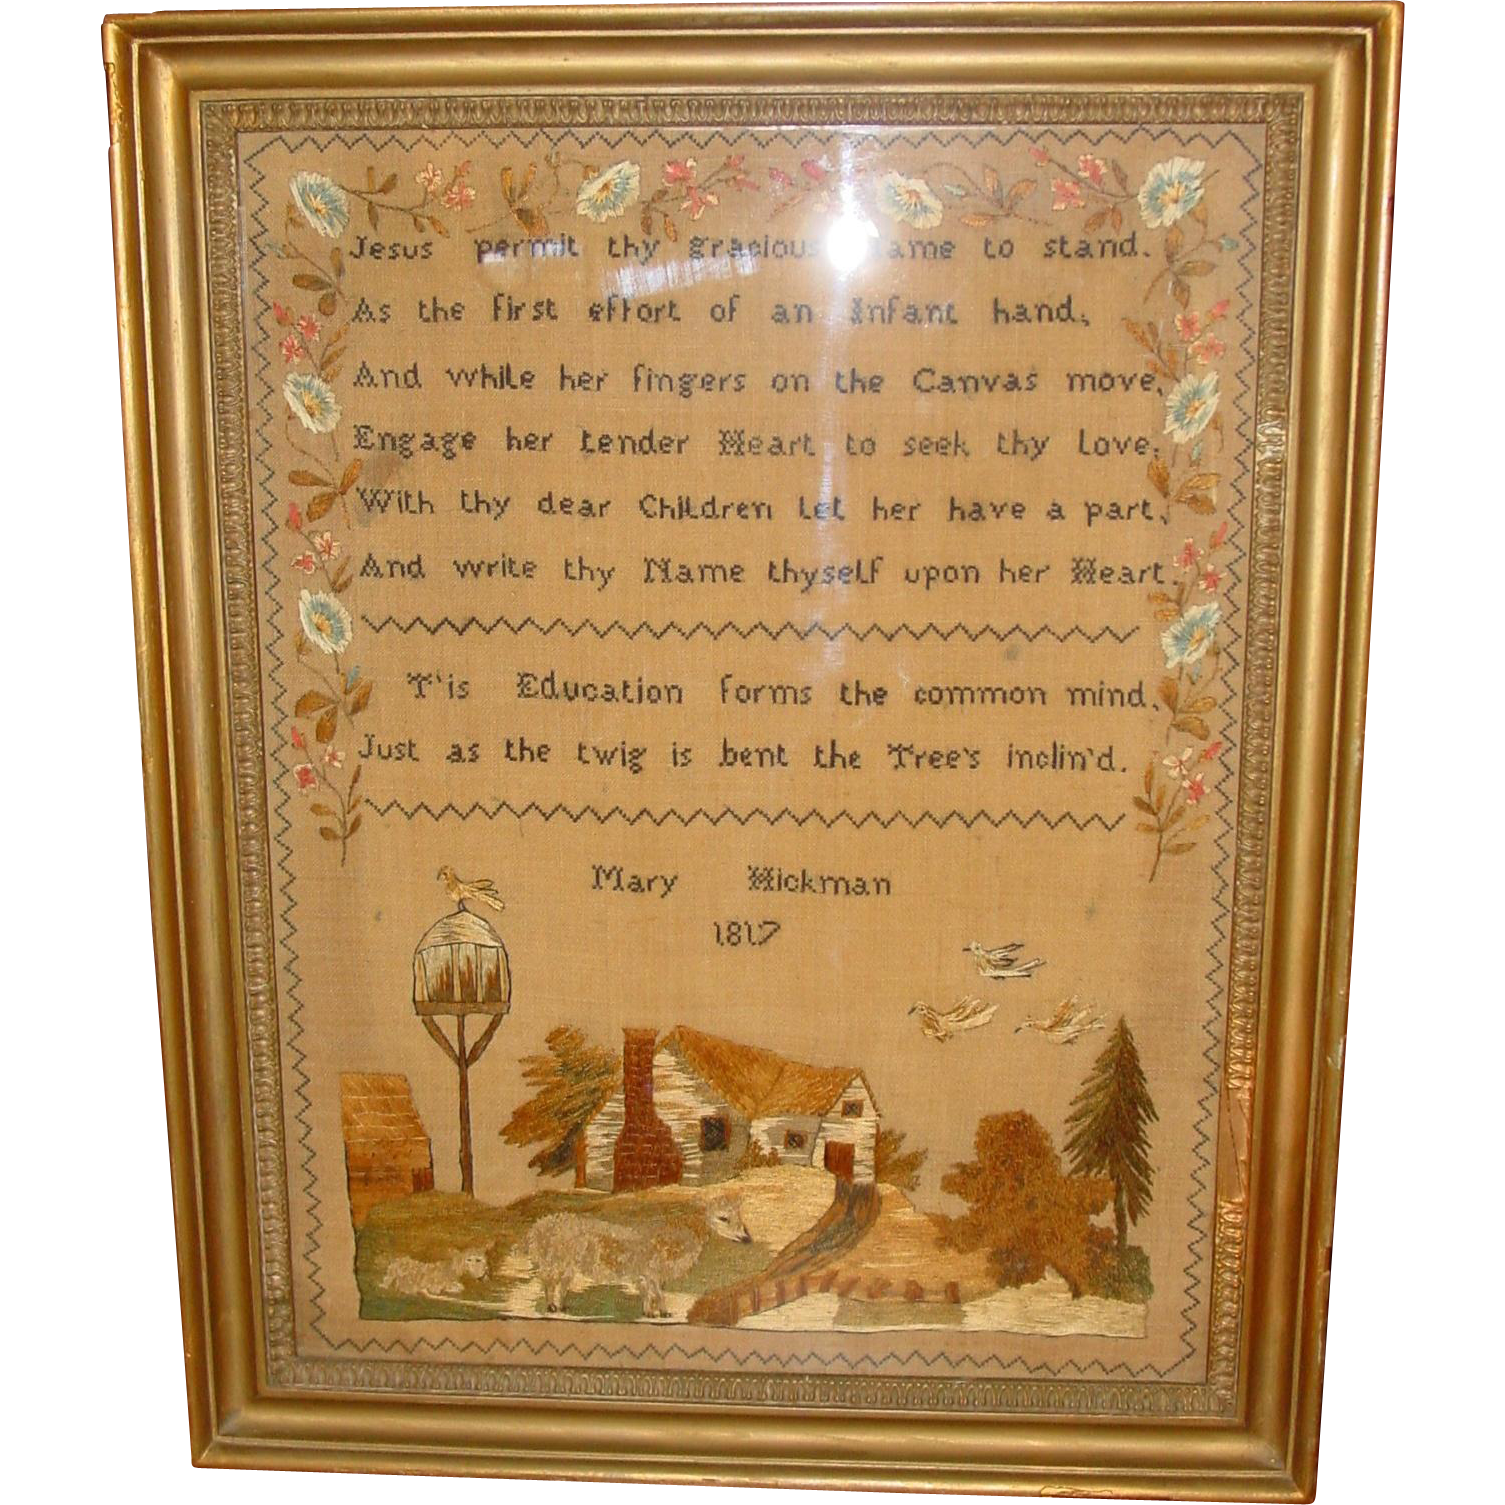 Schoolgirl needlework sampler by Mary Hickman 1817